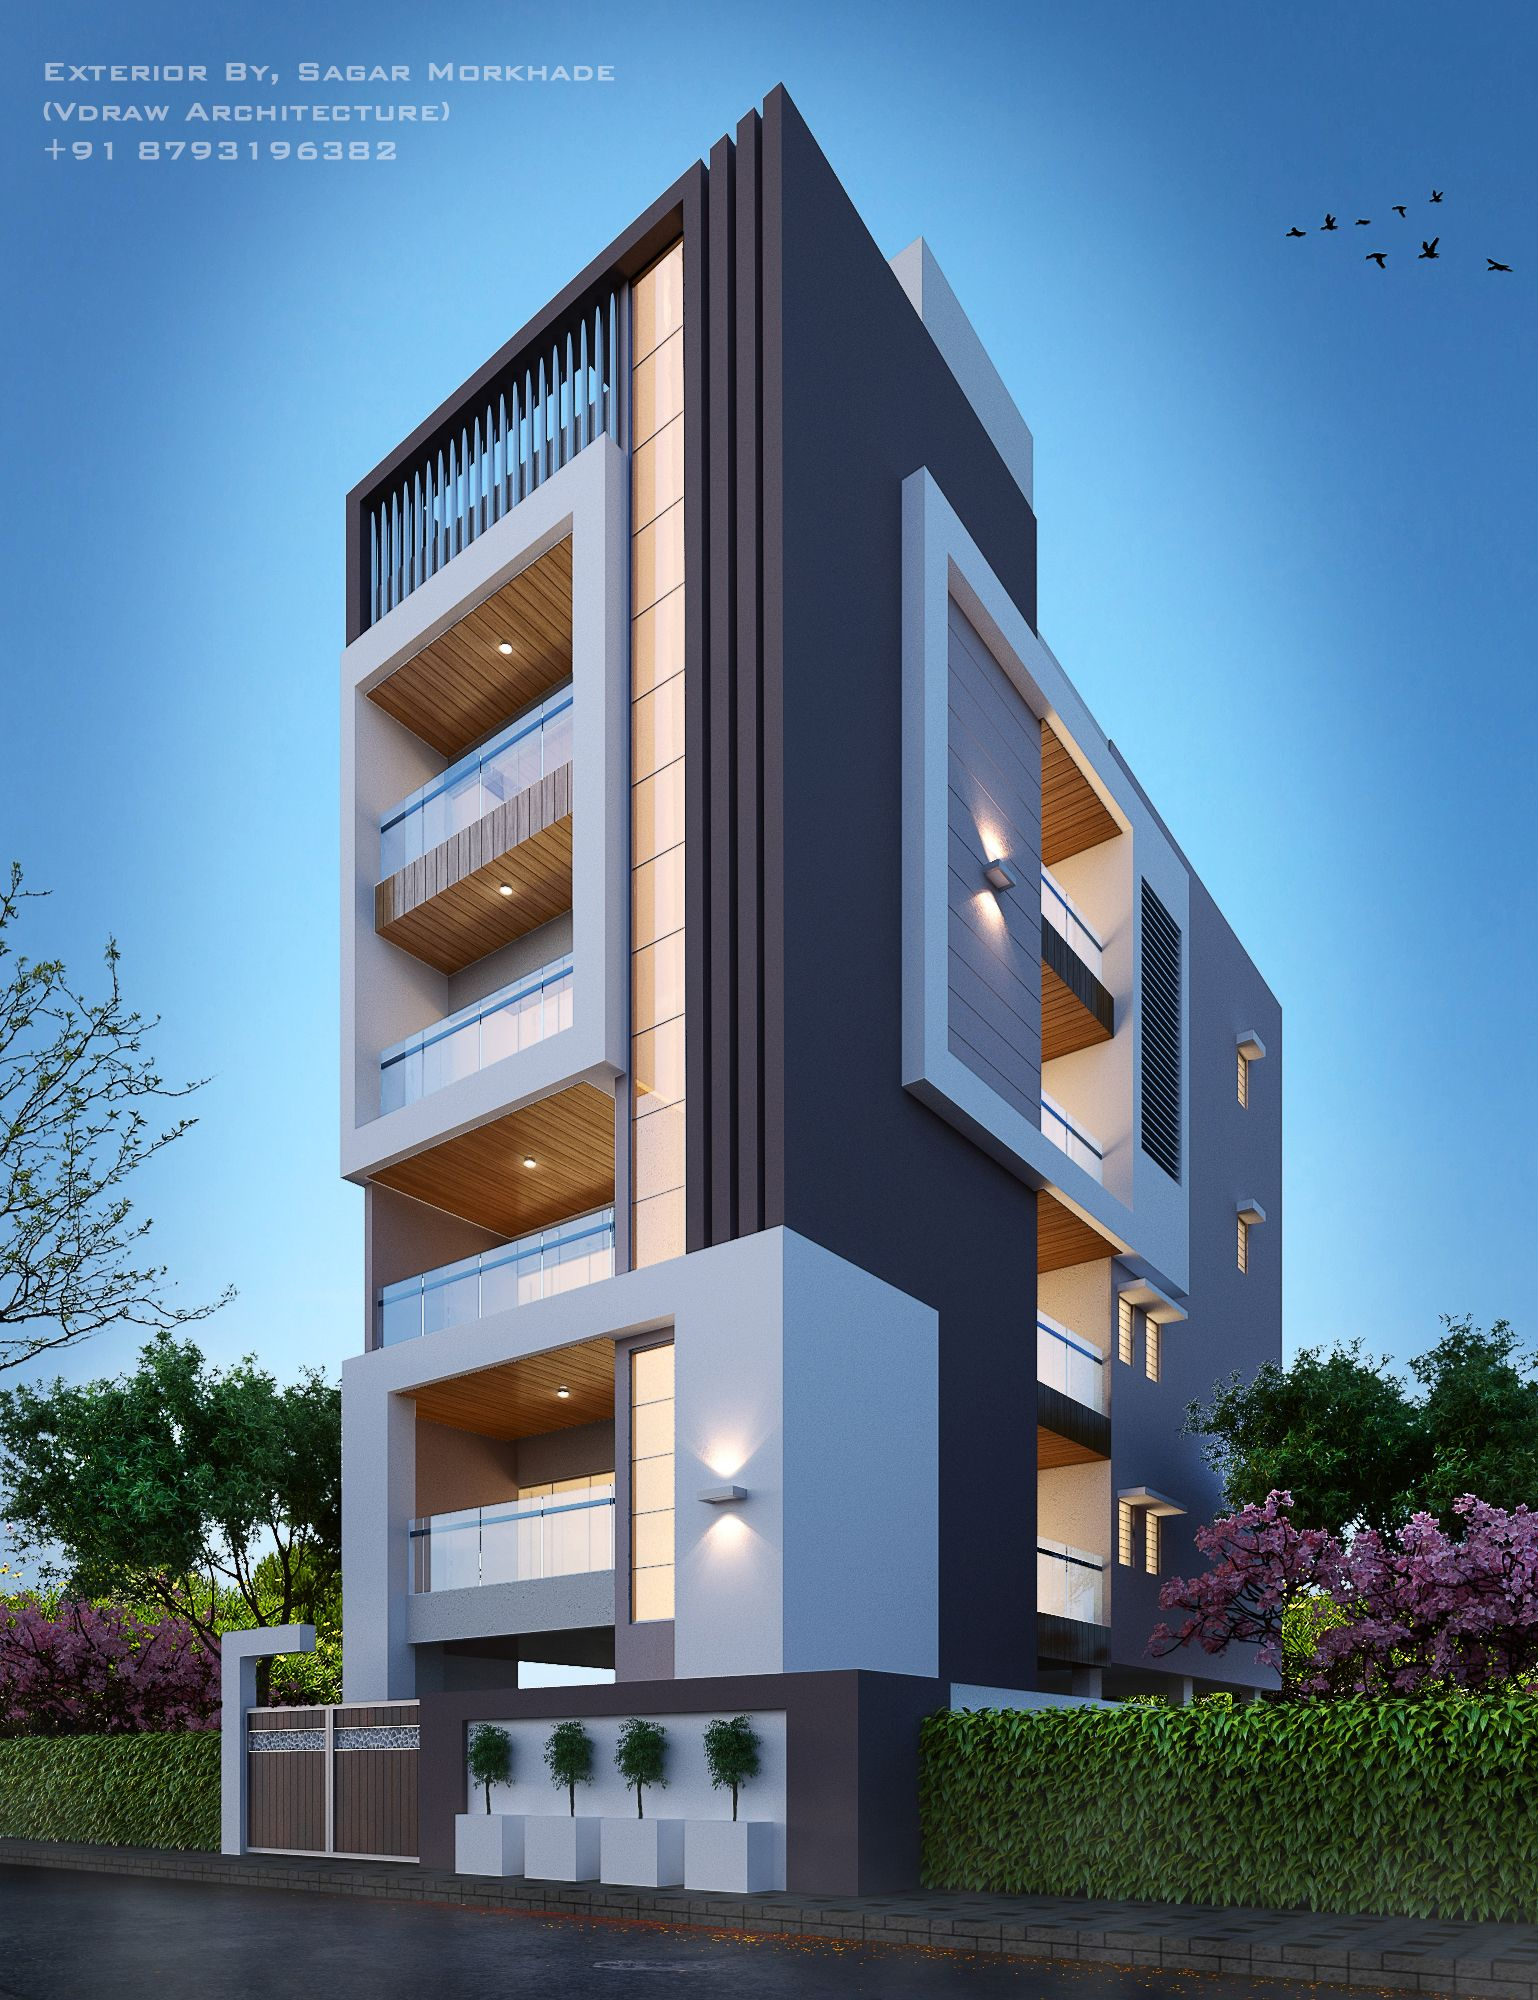 Modern Residential House Bungalow Exterior By Sagar: Modern Residential Flat Scheme Exterior By, Sagar Morkhade